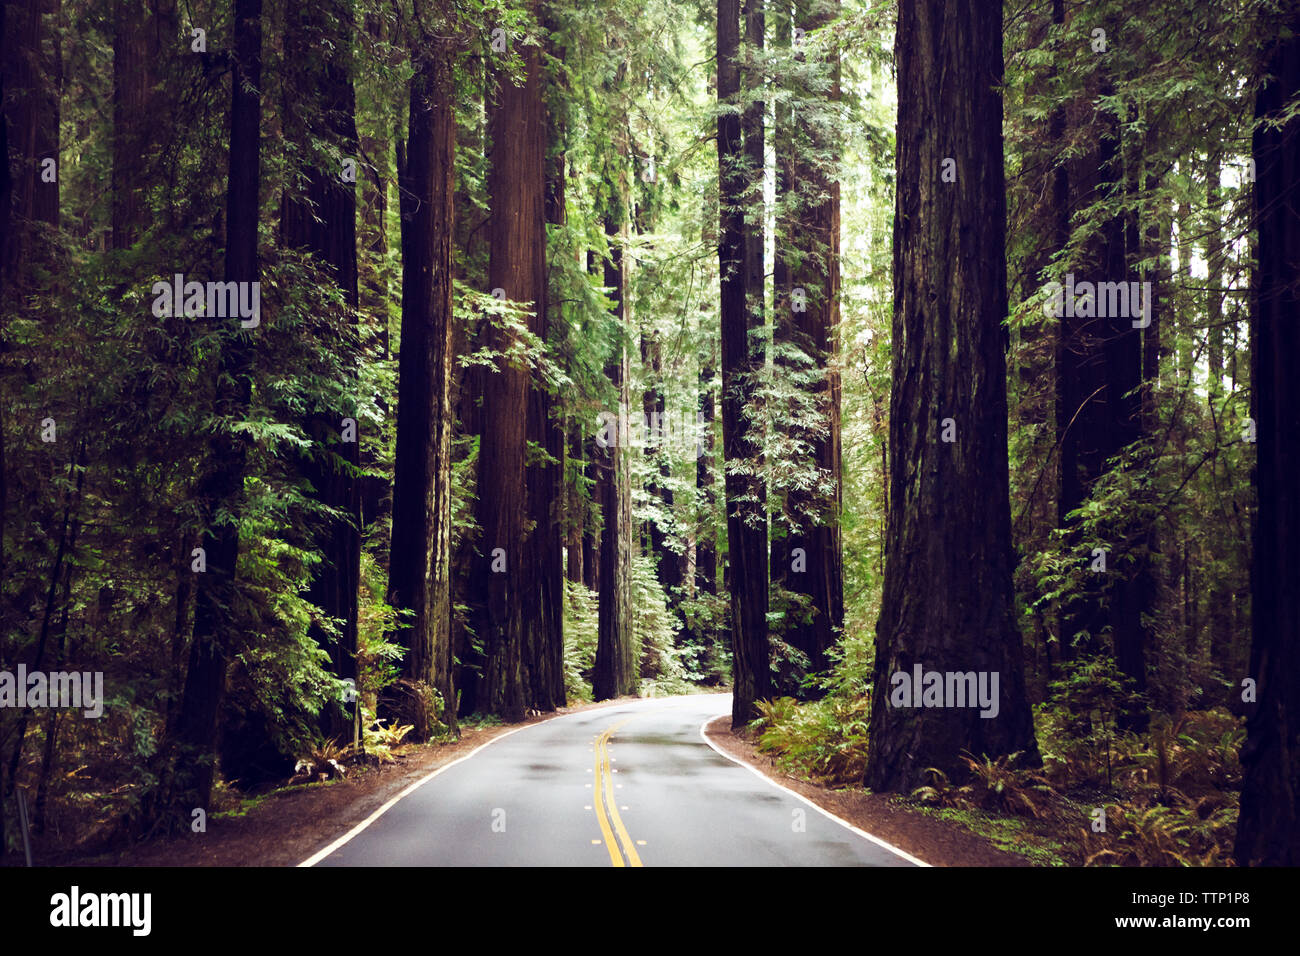 Empty road amidst redwood trees at state park - Stock Image